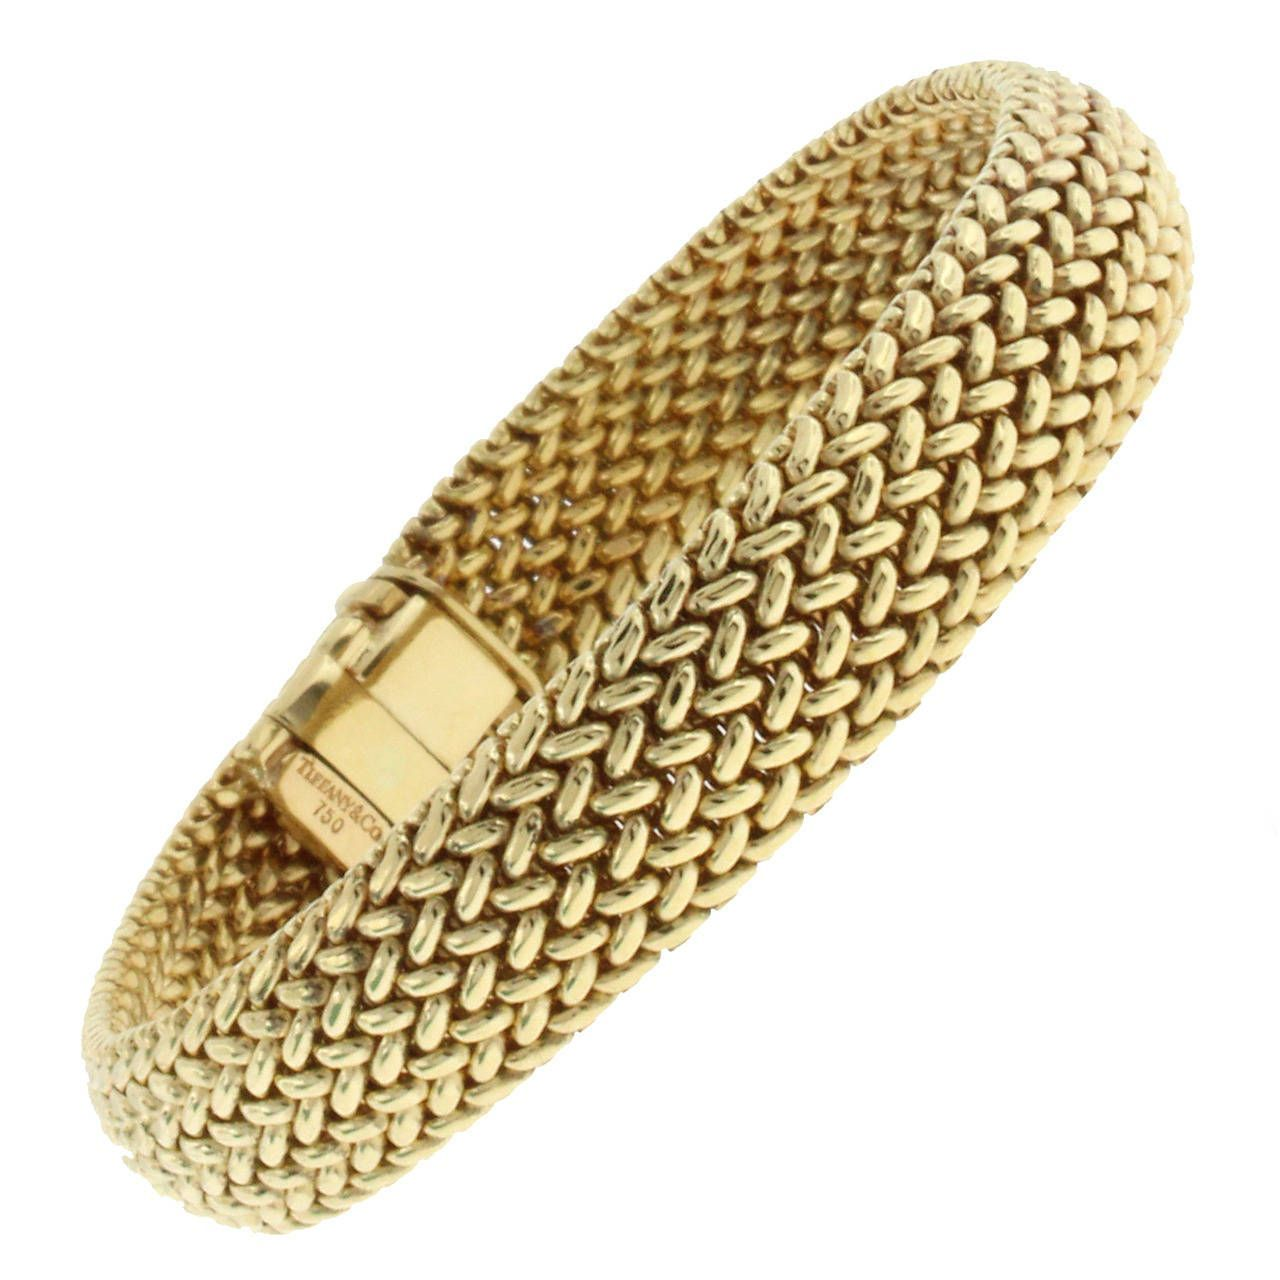 Tiffany Co Gold Mesh Bracelet This Tiffany Co mesh bracelet